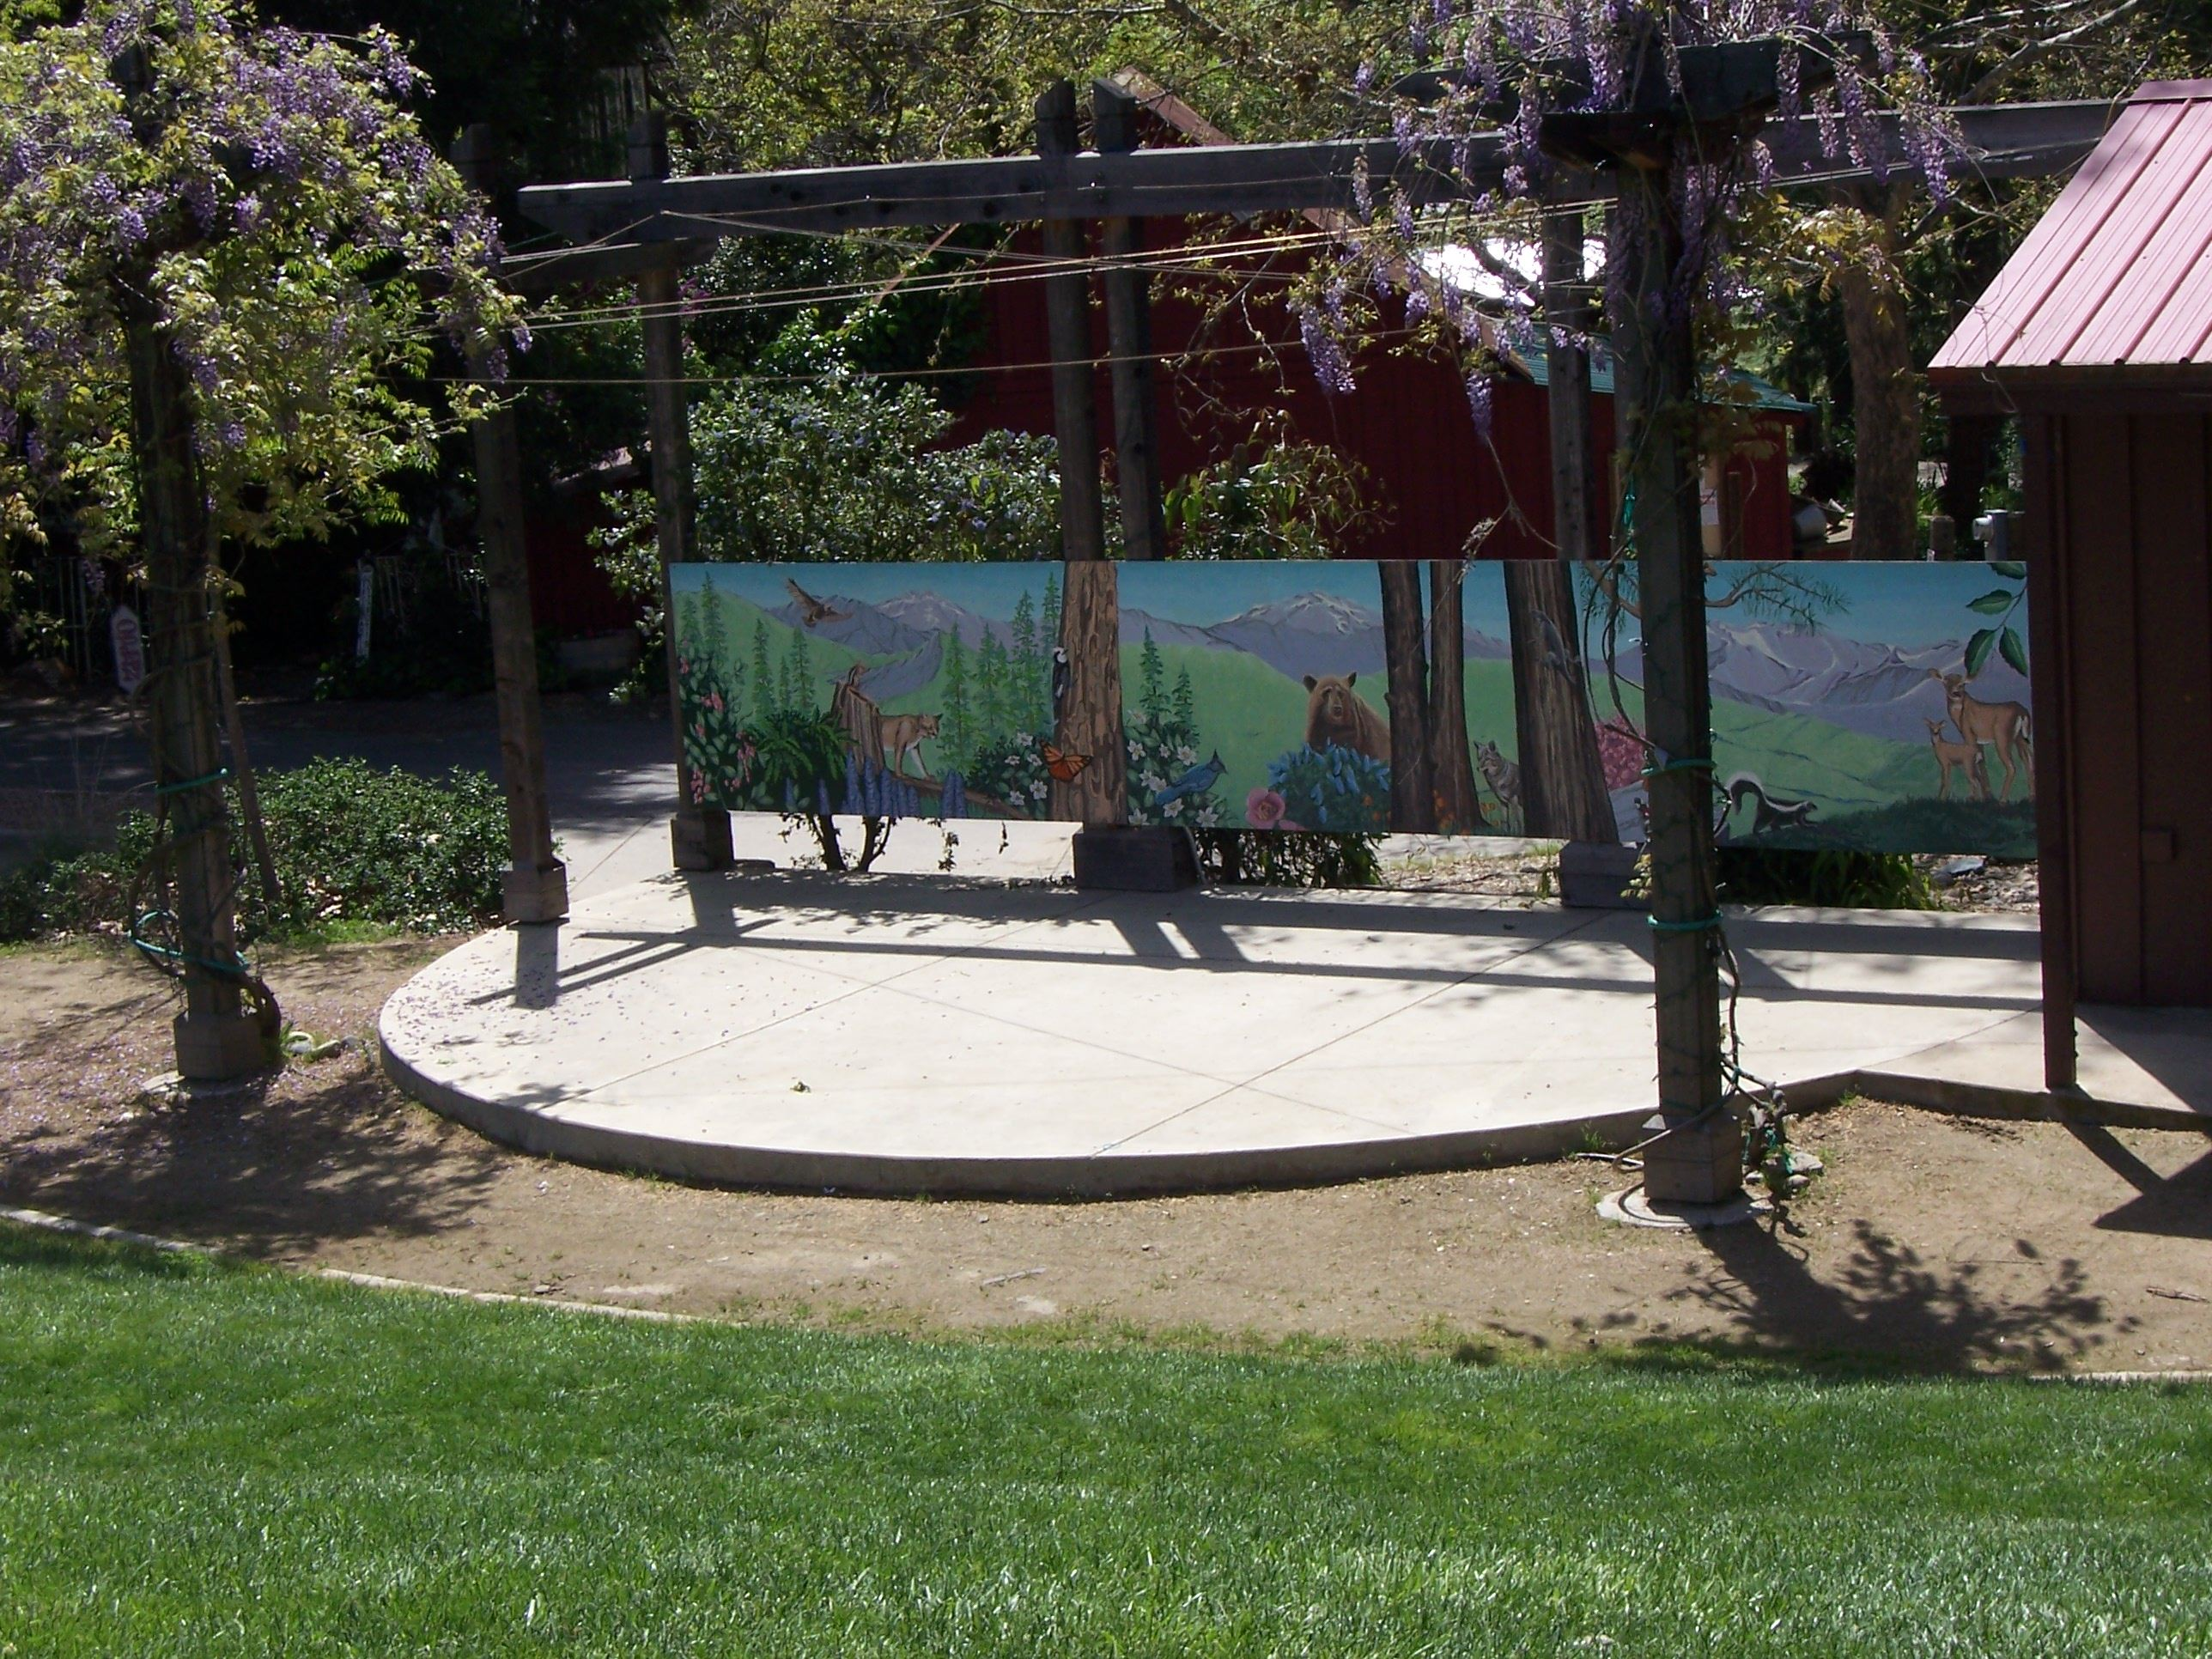 Photograph of outdoor stage with woodland mural behind and a lawn in the foreground